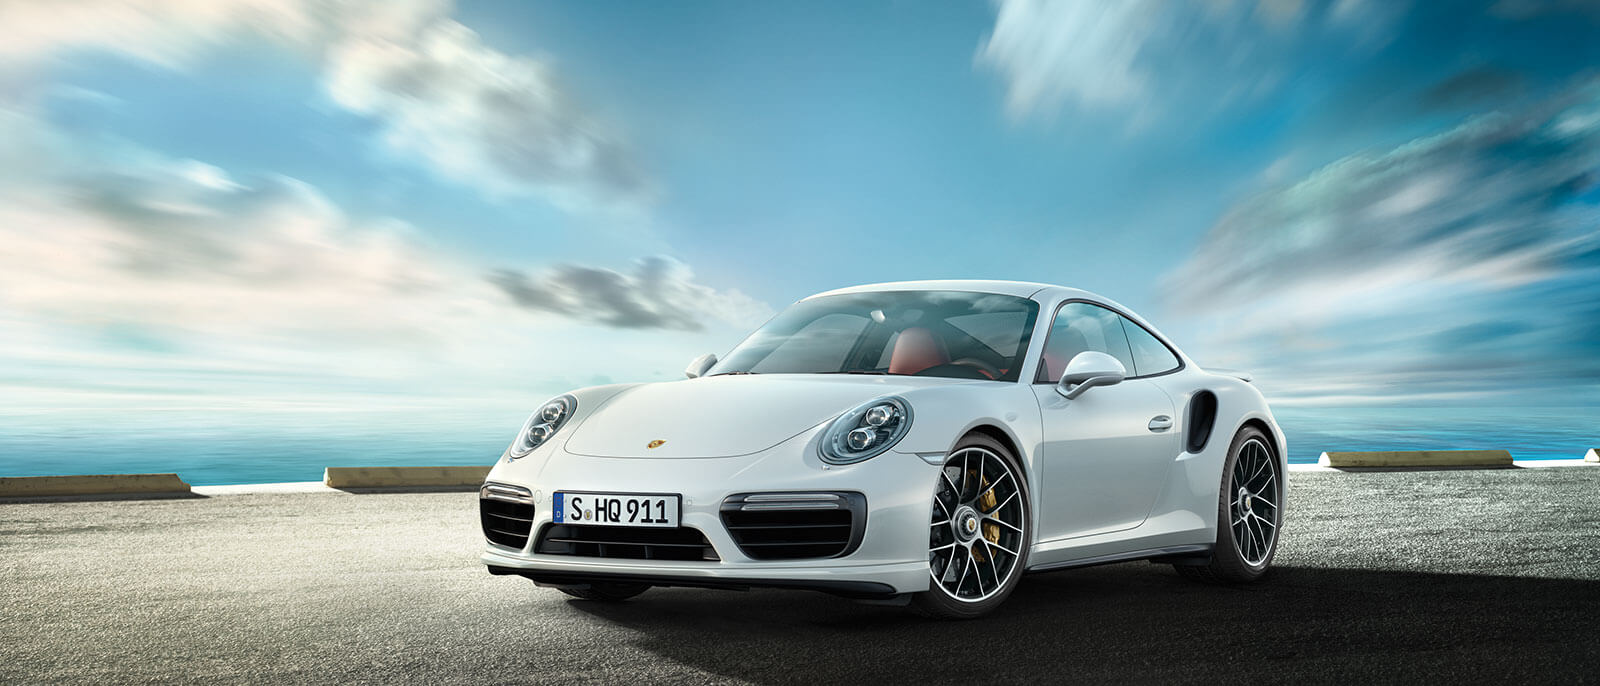 2016 Porsche 911 Turbo S front view in desert scene